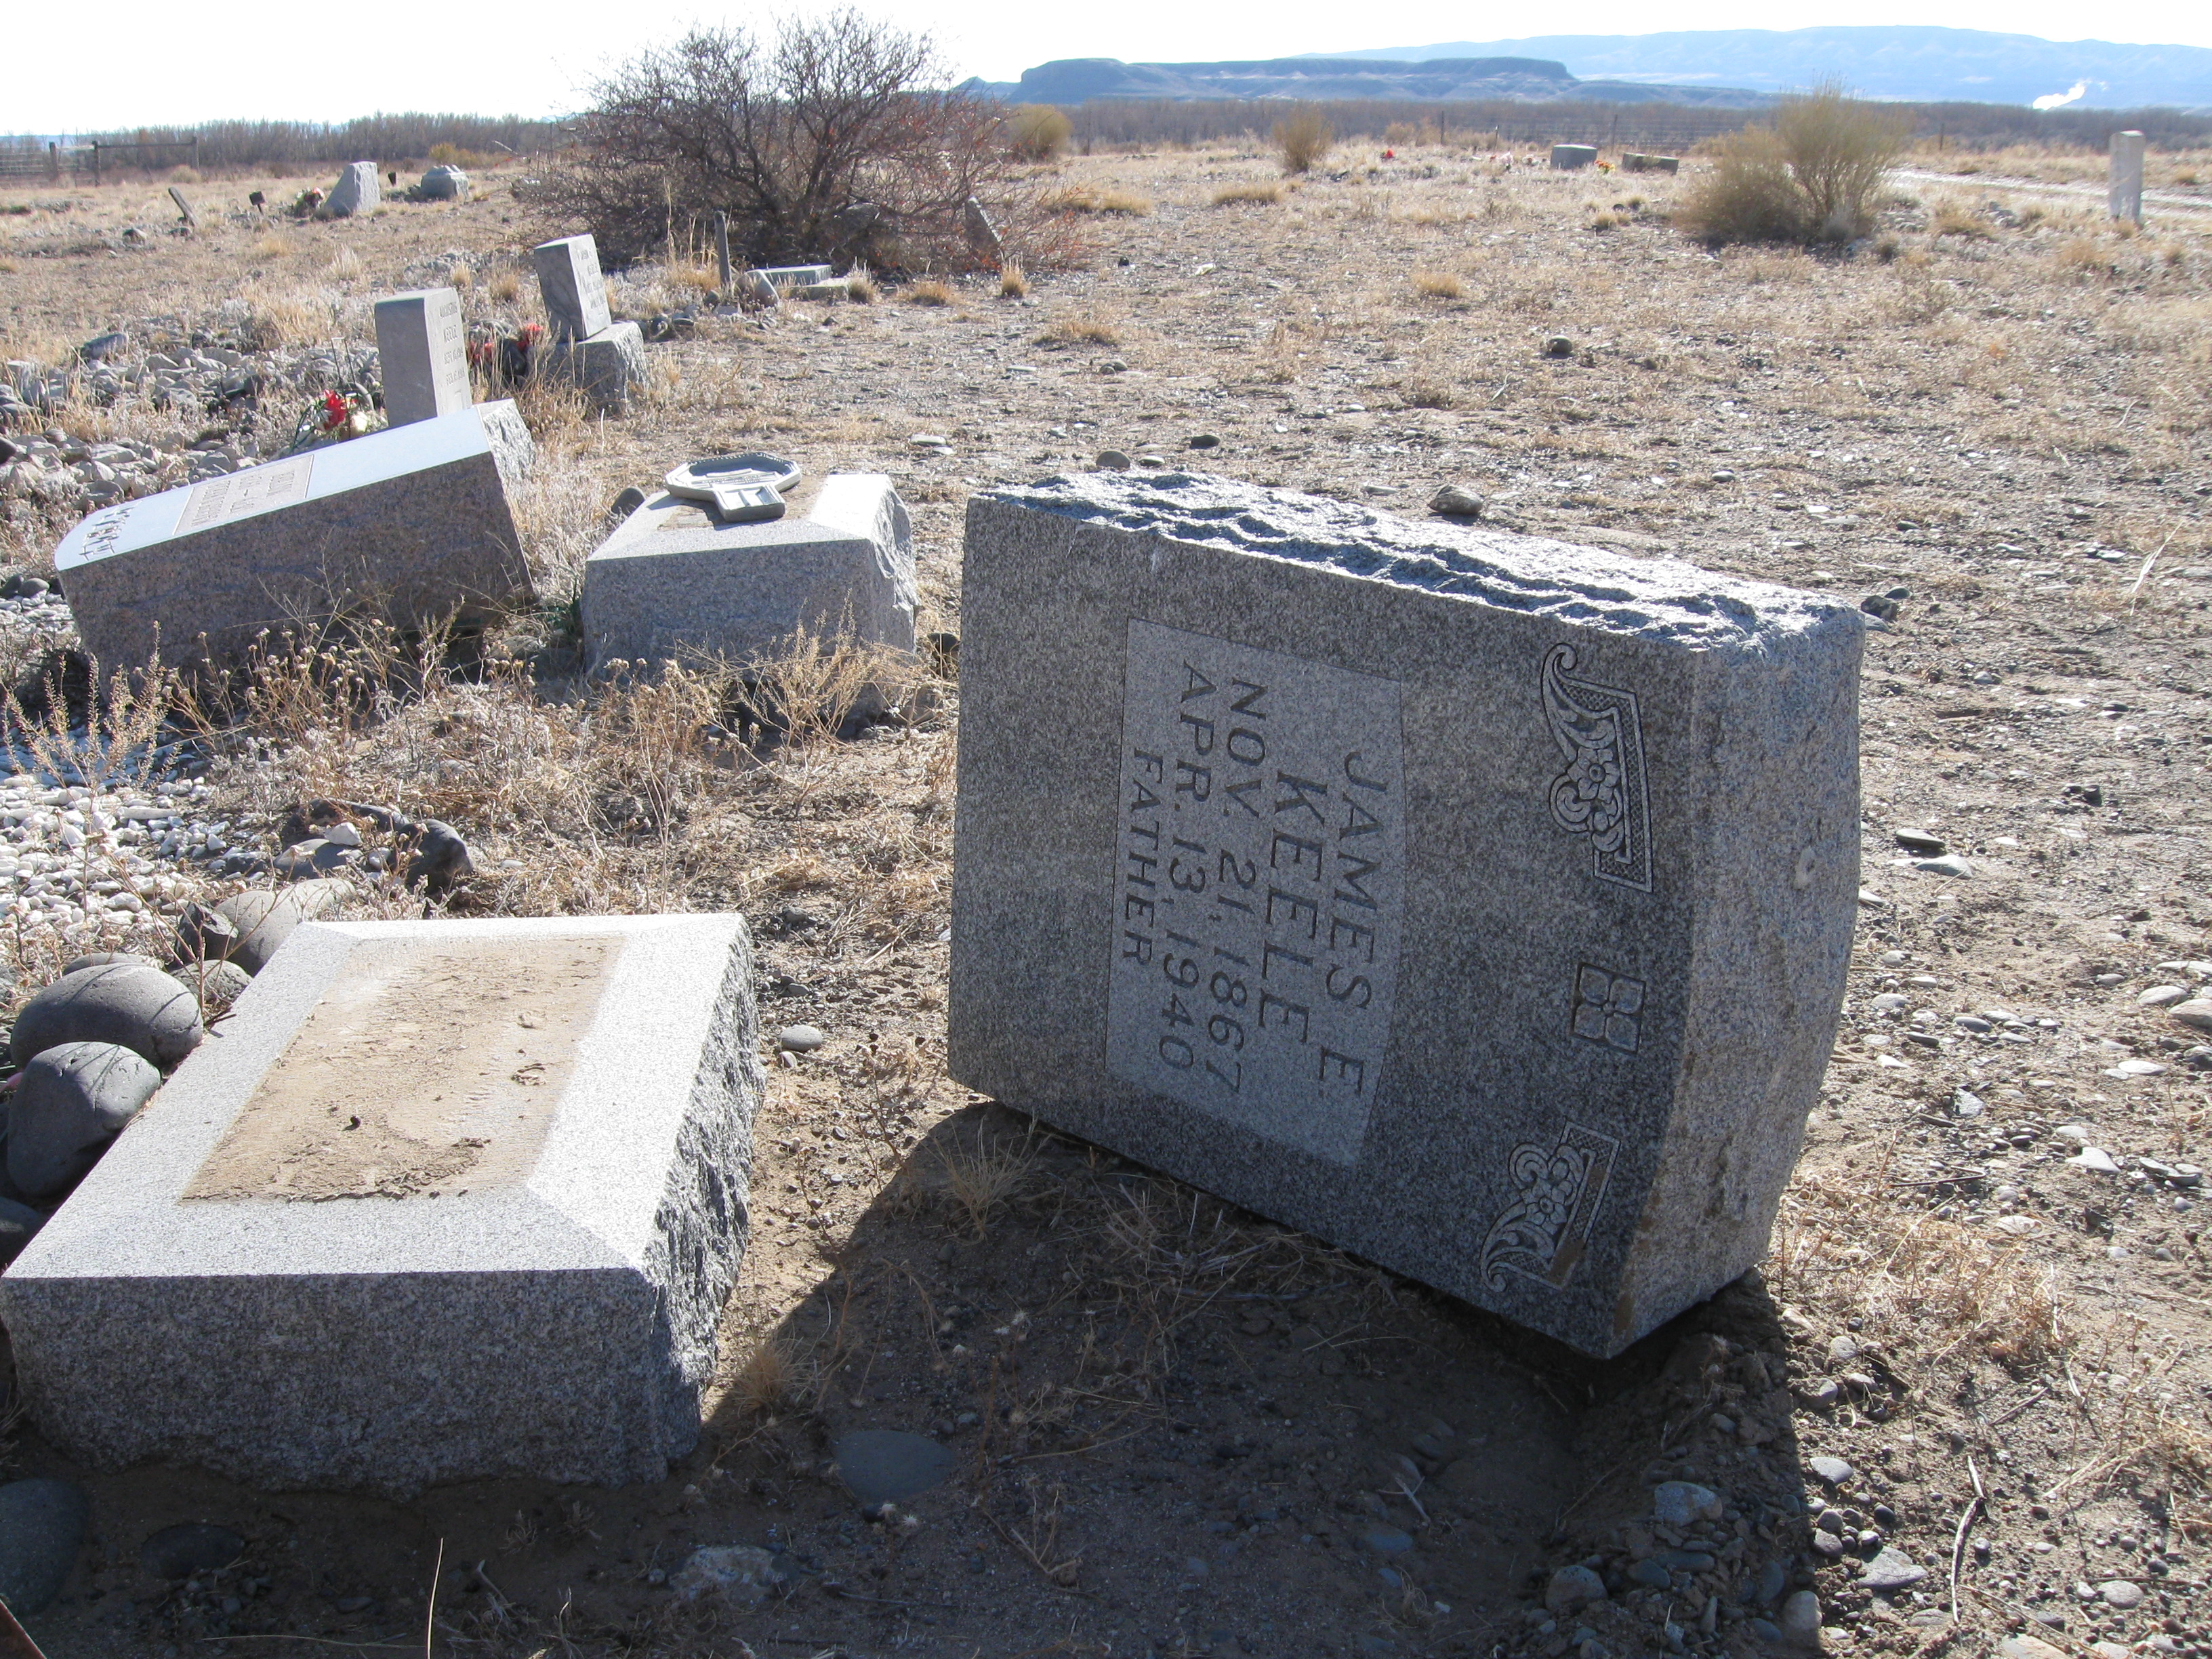 Headstones pushed over as part of the Kane Cemetery vandalism